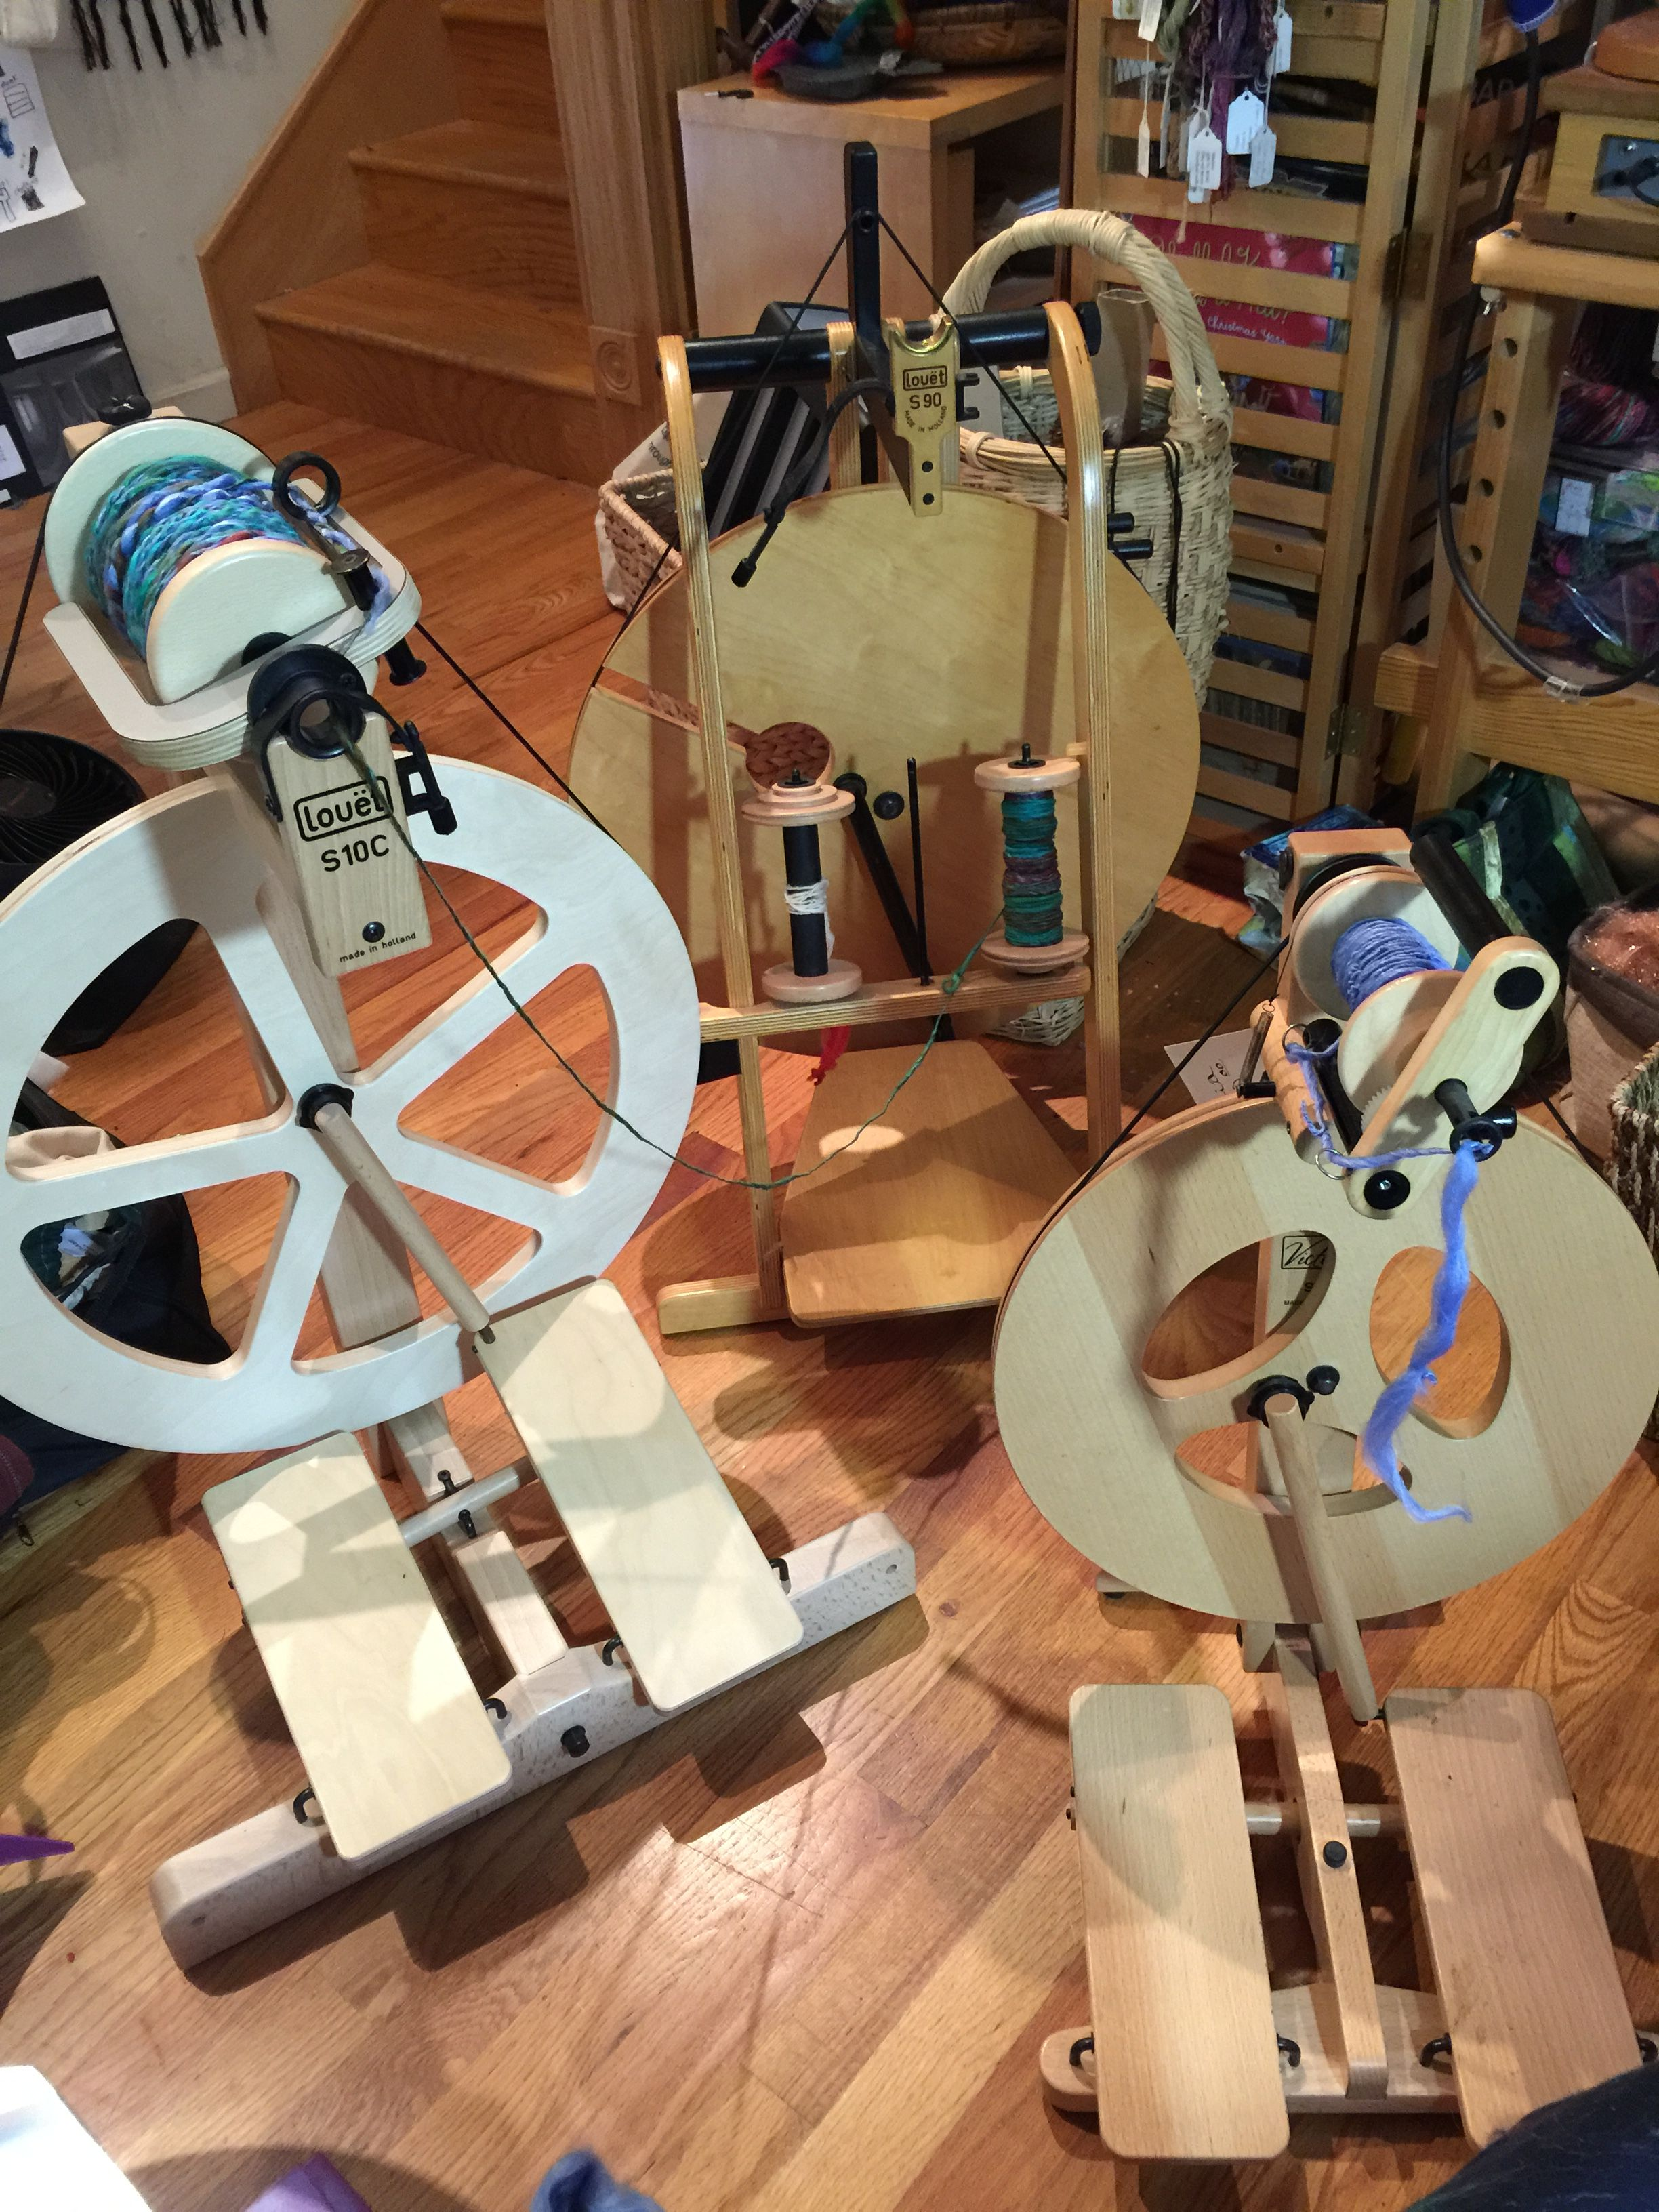 Part of My louet spinning wheel herd! happiness is having reliable non fussy Louet wheels at the ready day in day out to play  with fiber at!